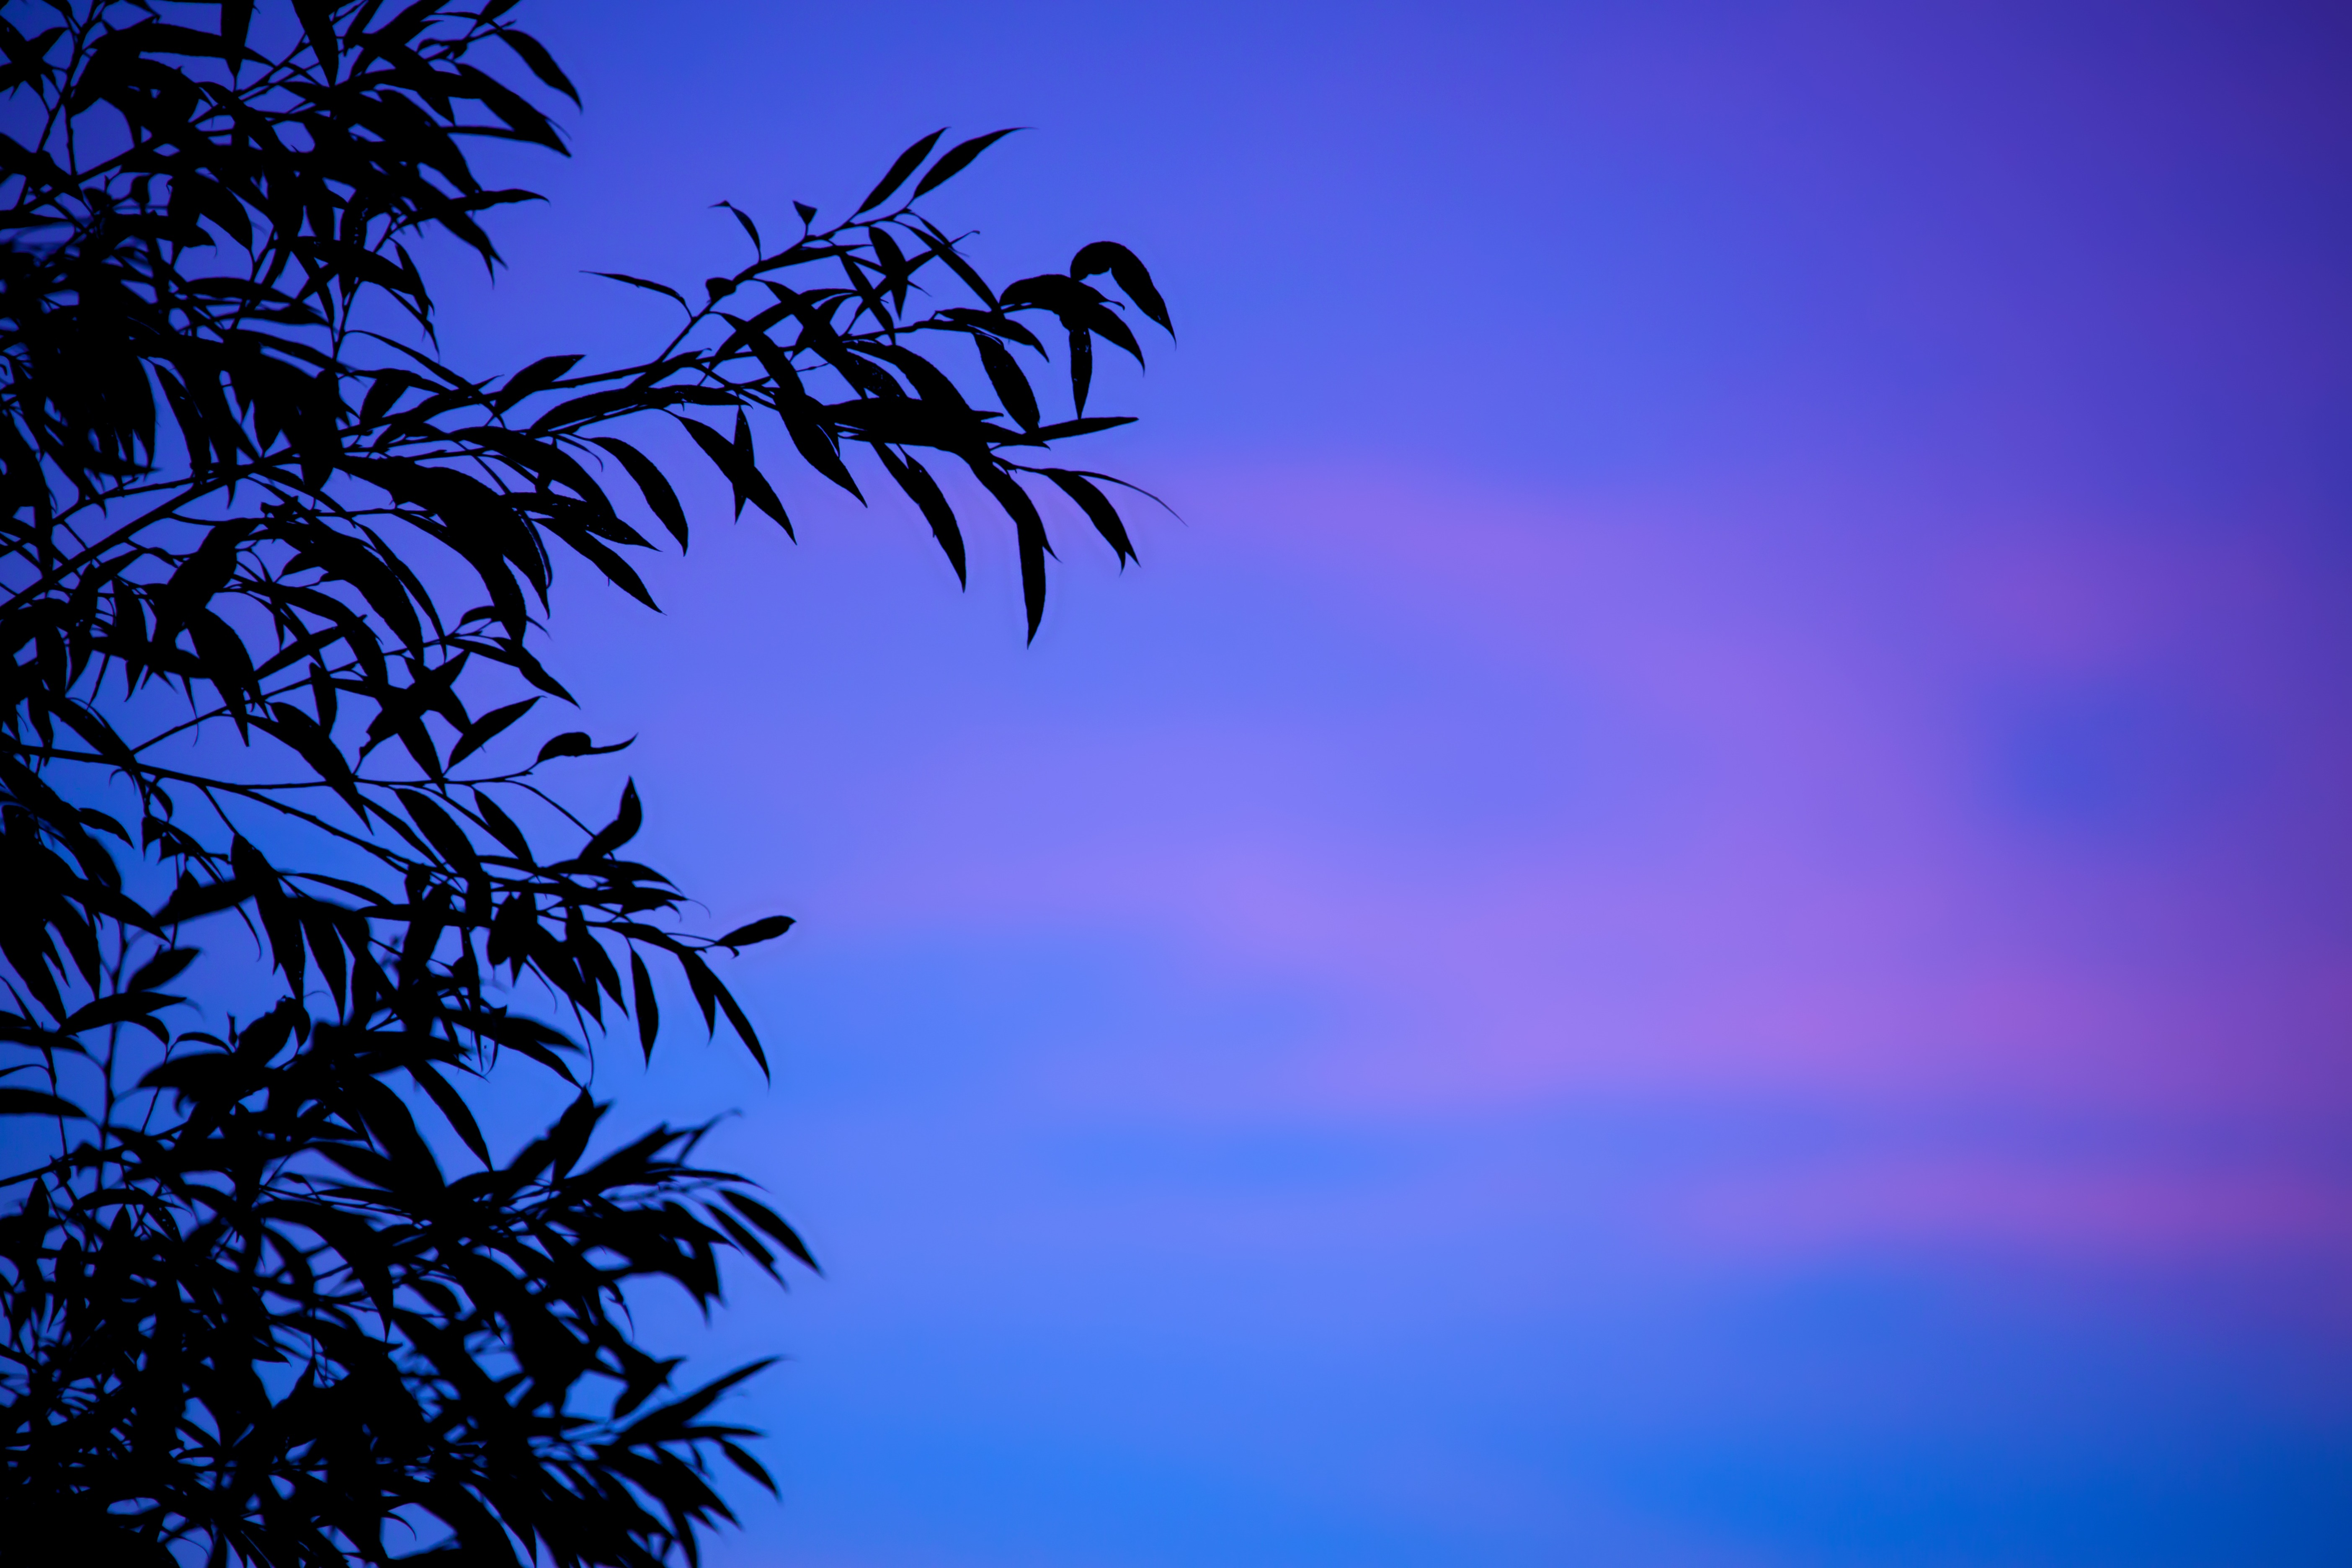 125248 download wallpaper Nature, Branches, Sky, Leaves, Dusk, Twilight, Sunset, Gradient screensavers and pictures for free